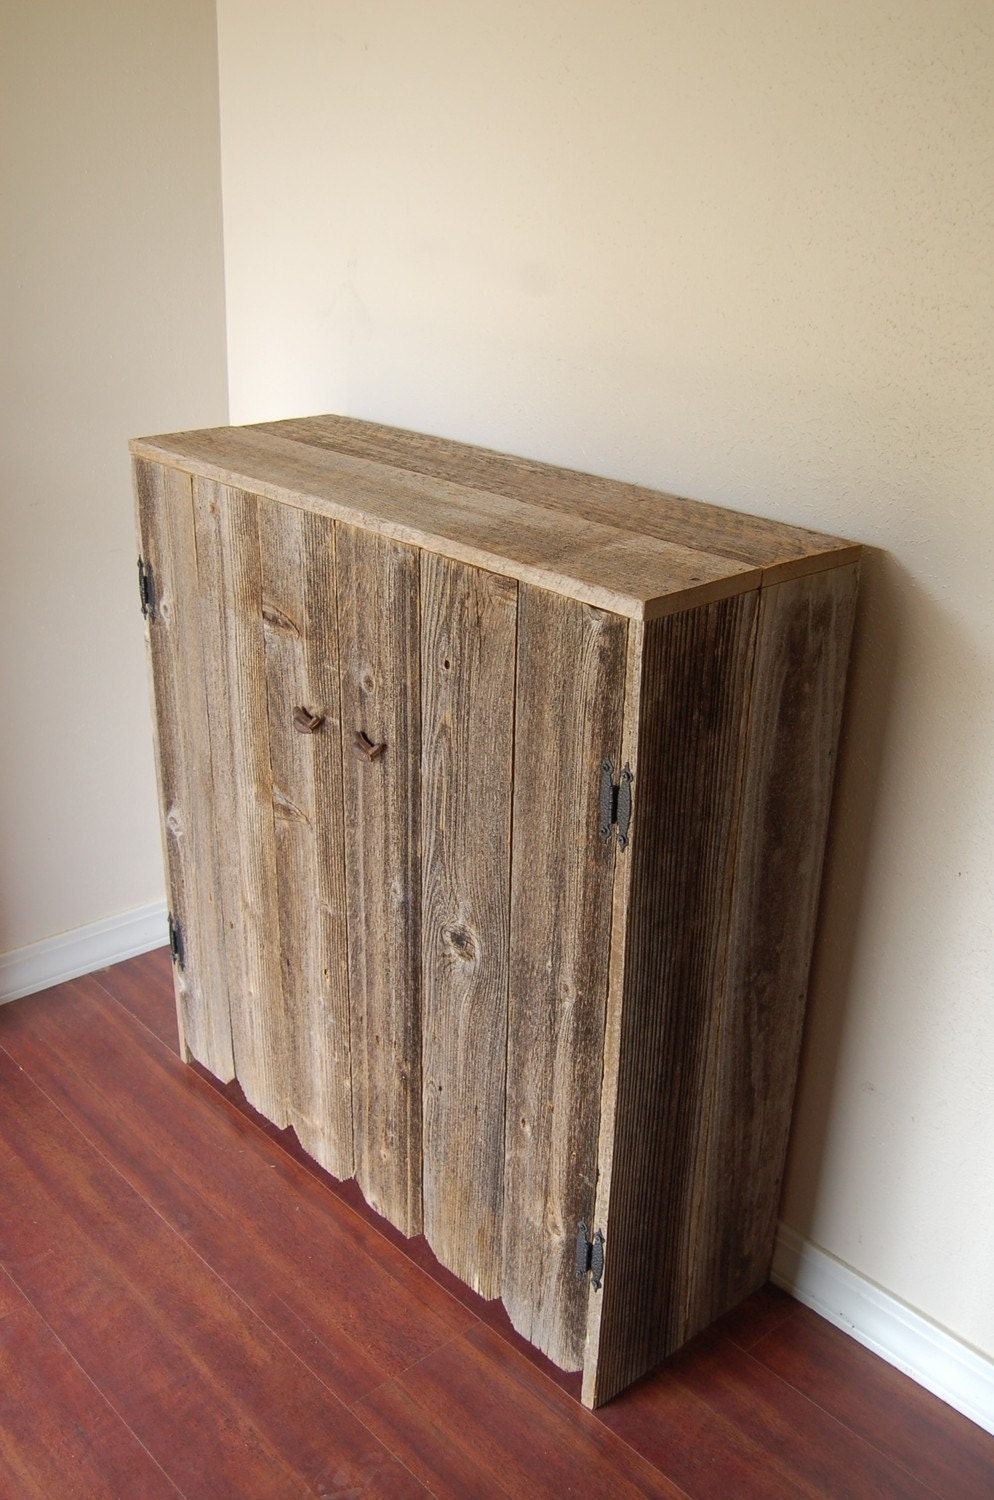 Reclaimed wood cabinet large wooden pantry wooden cabinet for Wood cabinets